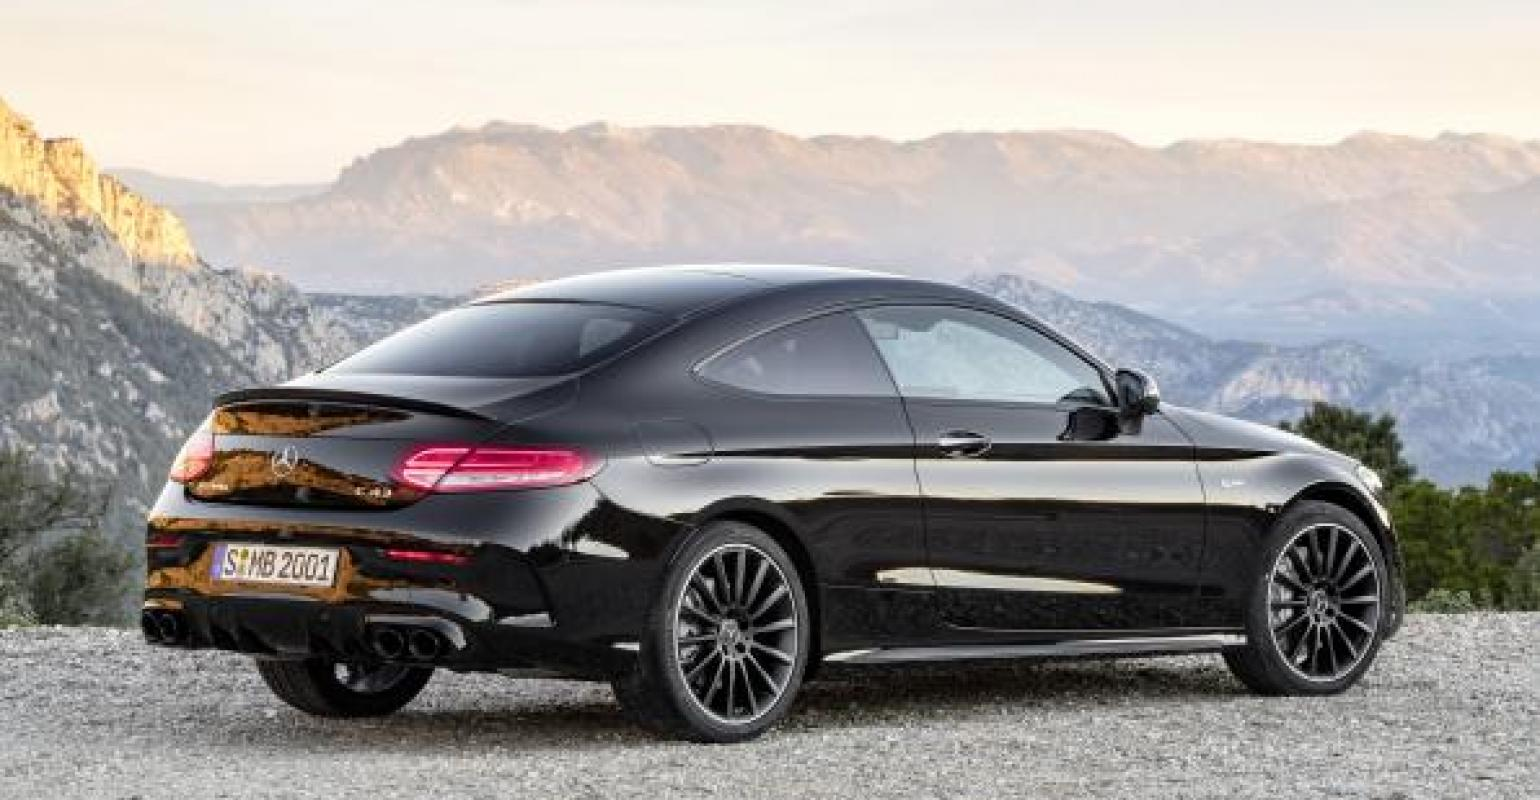 Mercedes Automaker Reveals Facelifted C Class Coupe Cabriolet Wardsauto